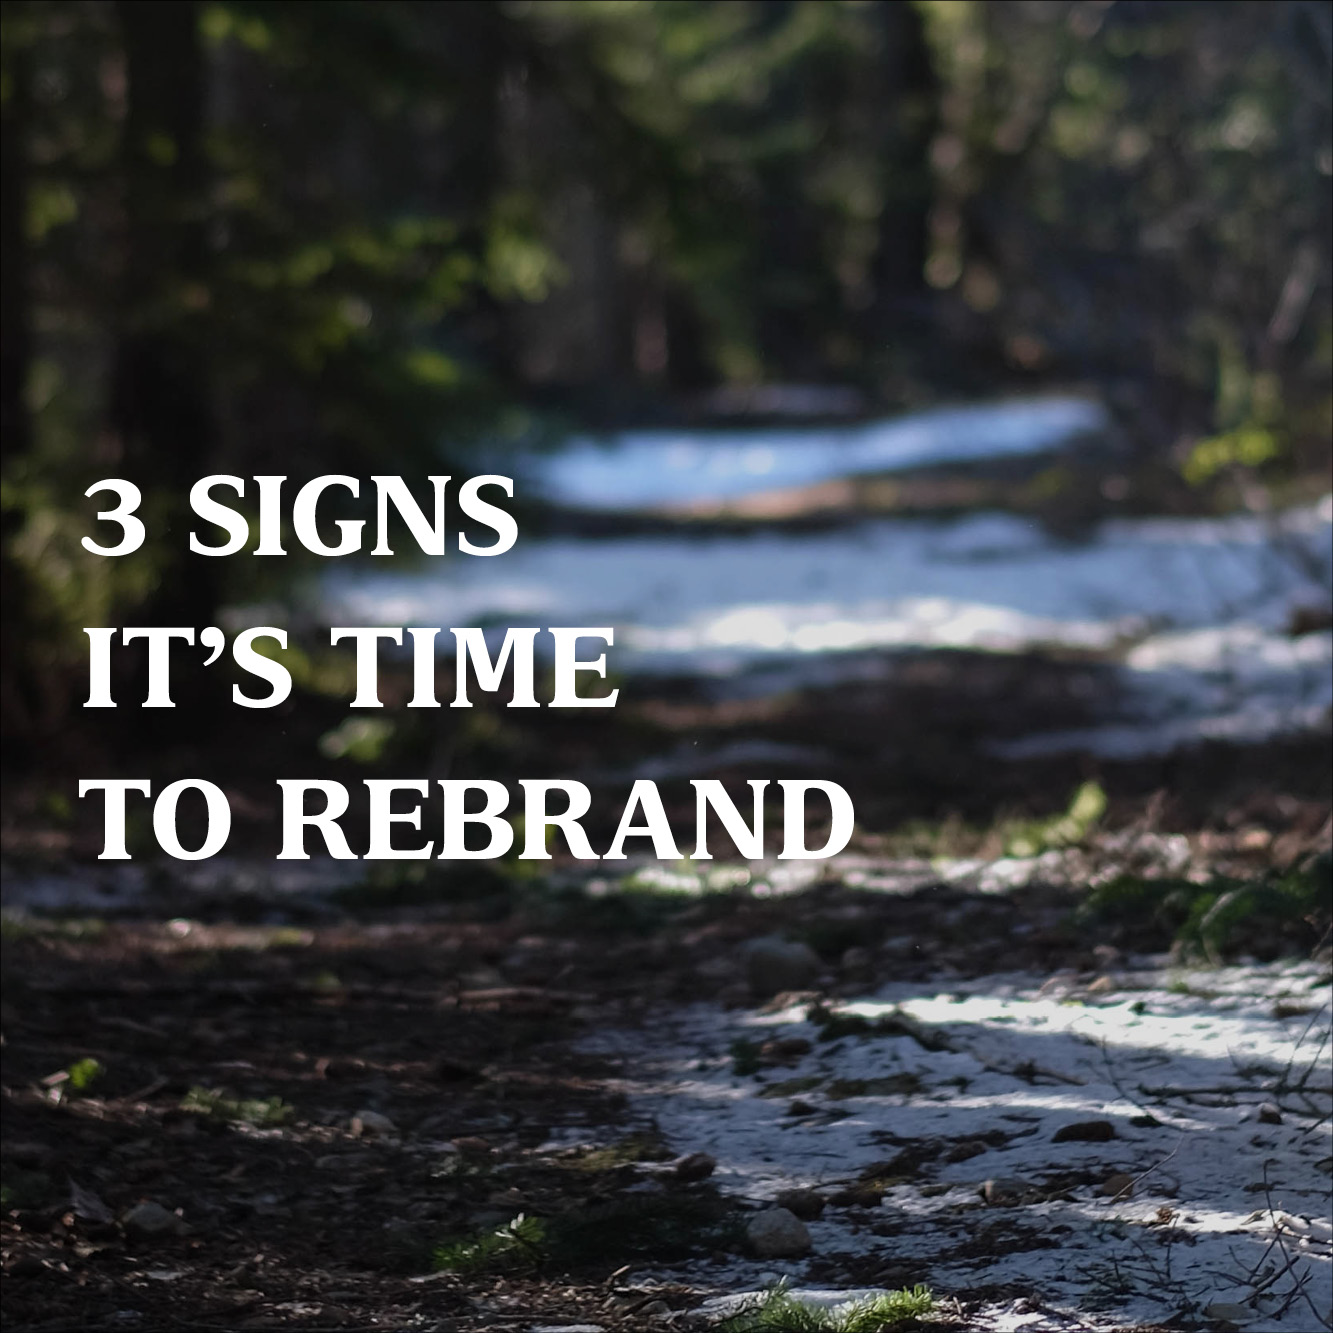 3 Signs it's Time to Rebrand